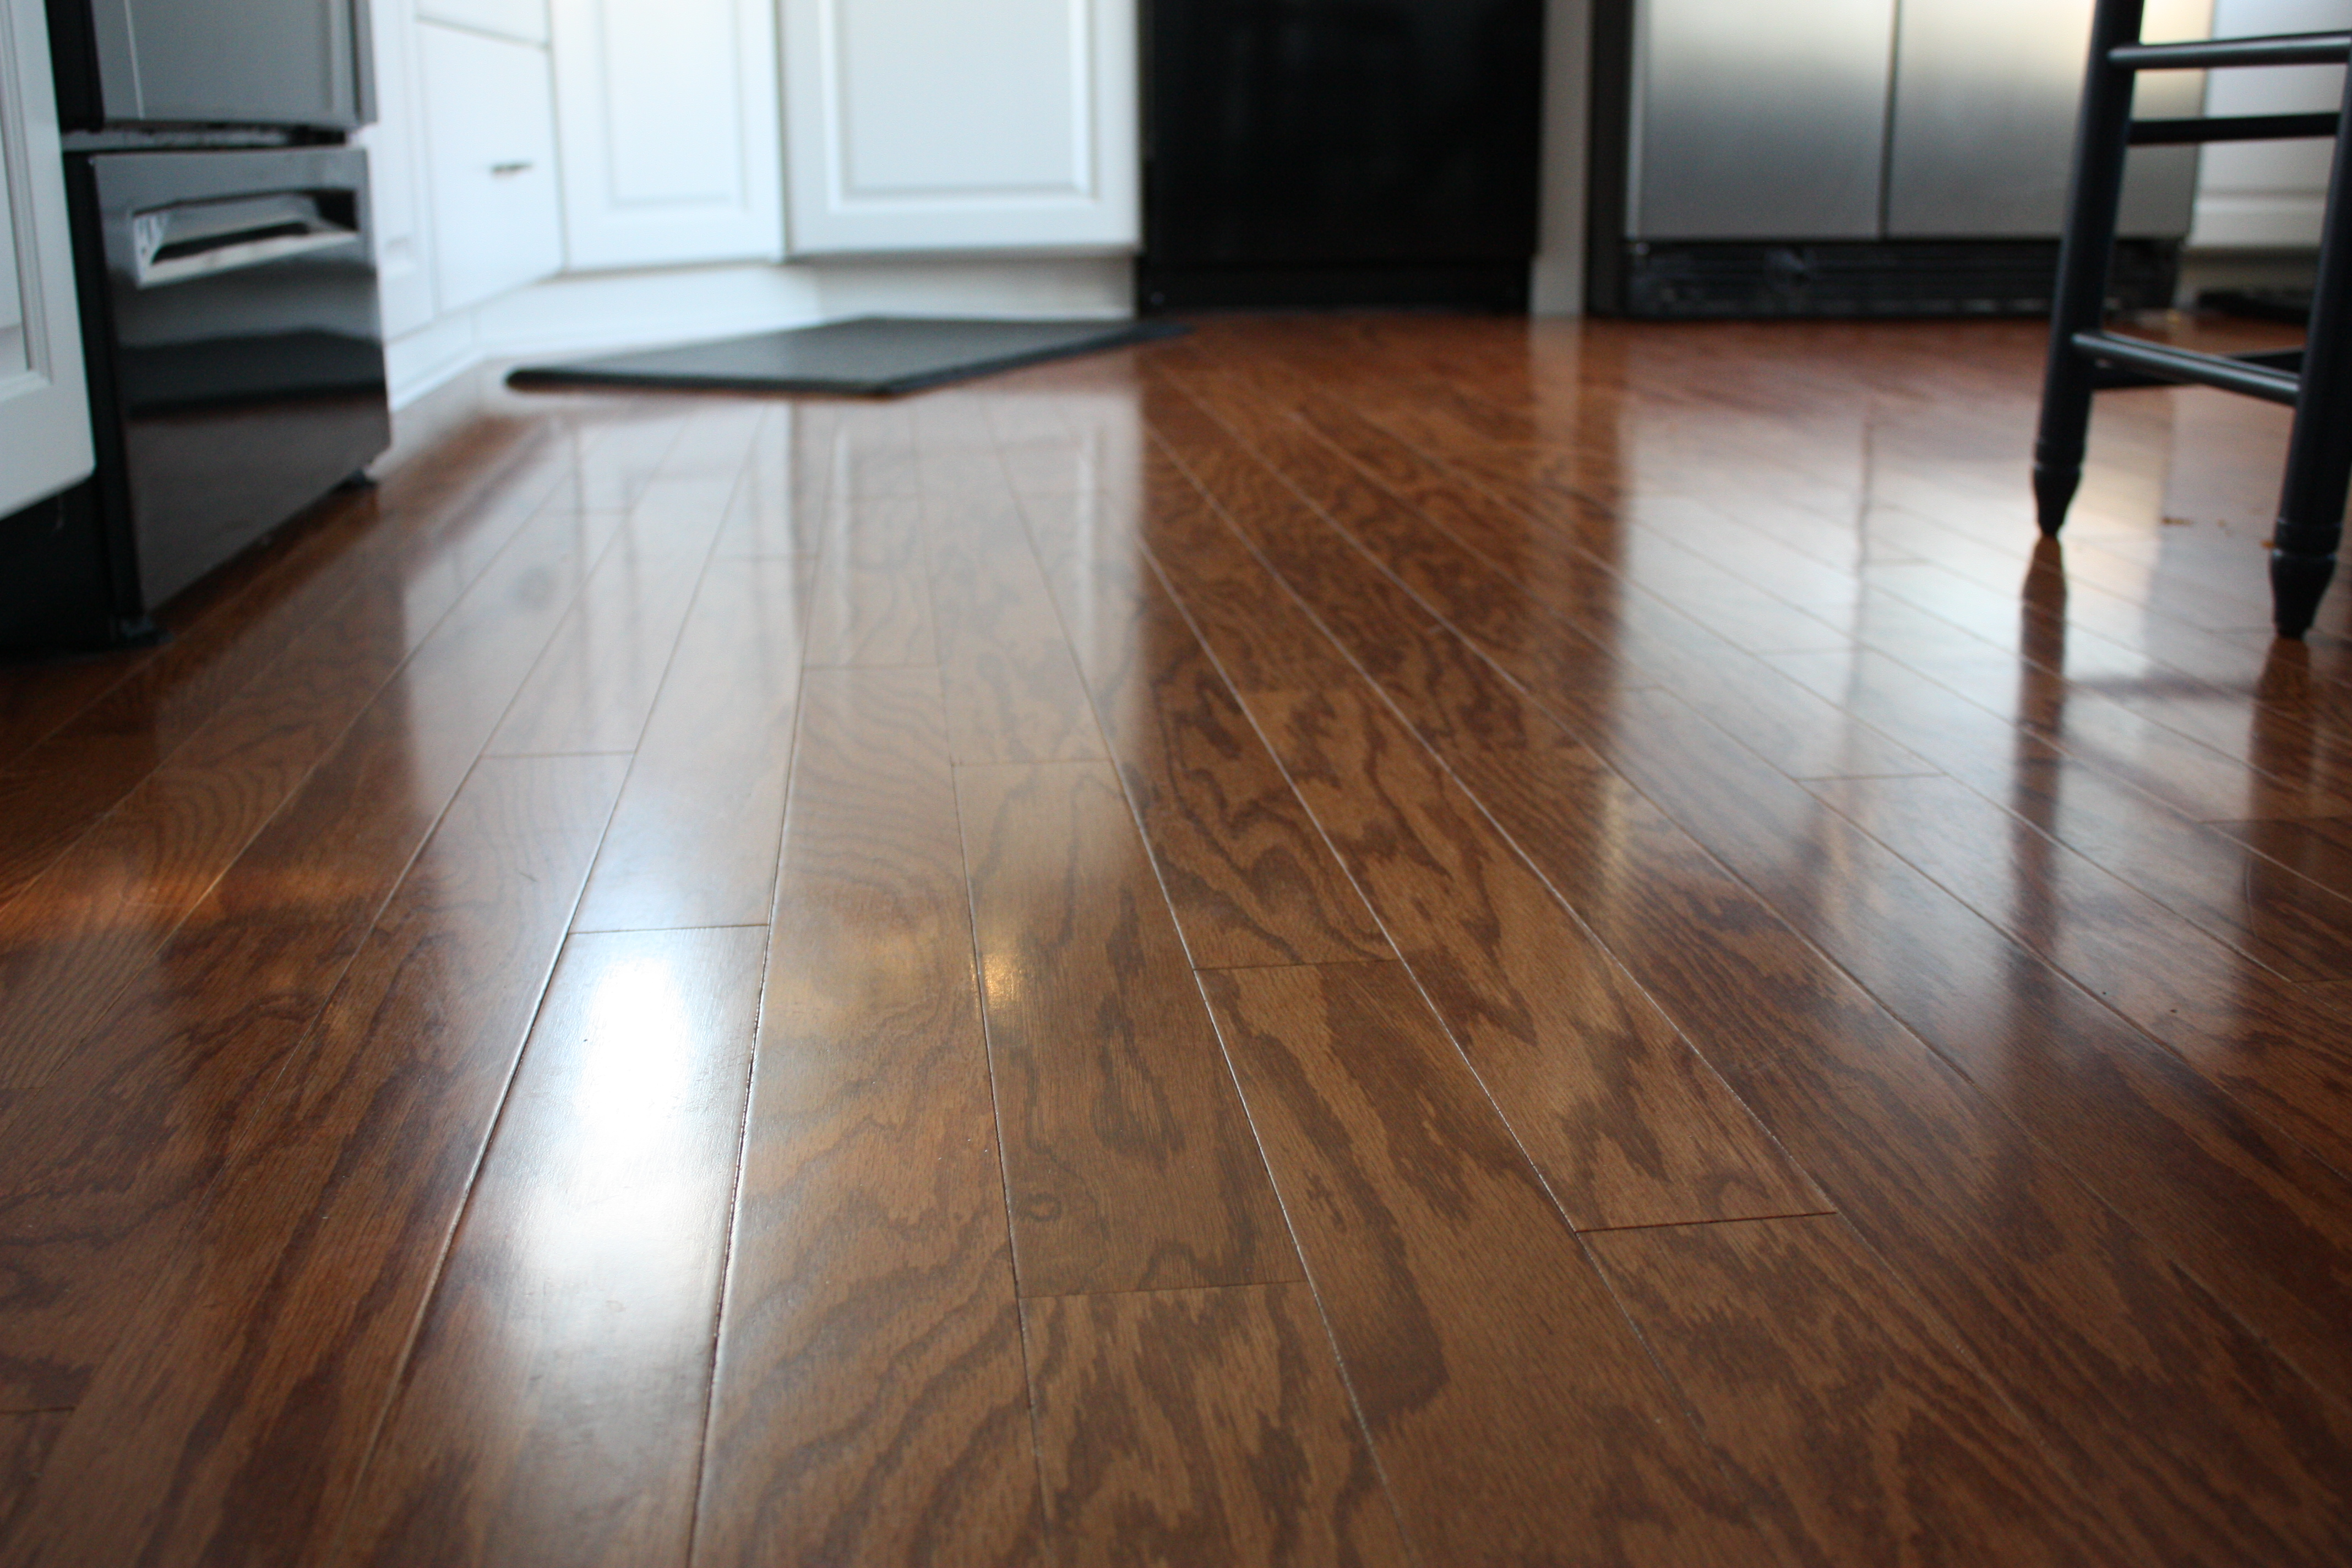 Wood Floors The Clean Team Carpet Cleaning Denver